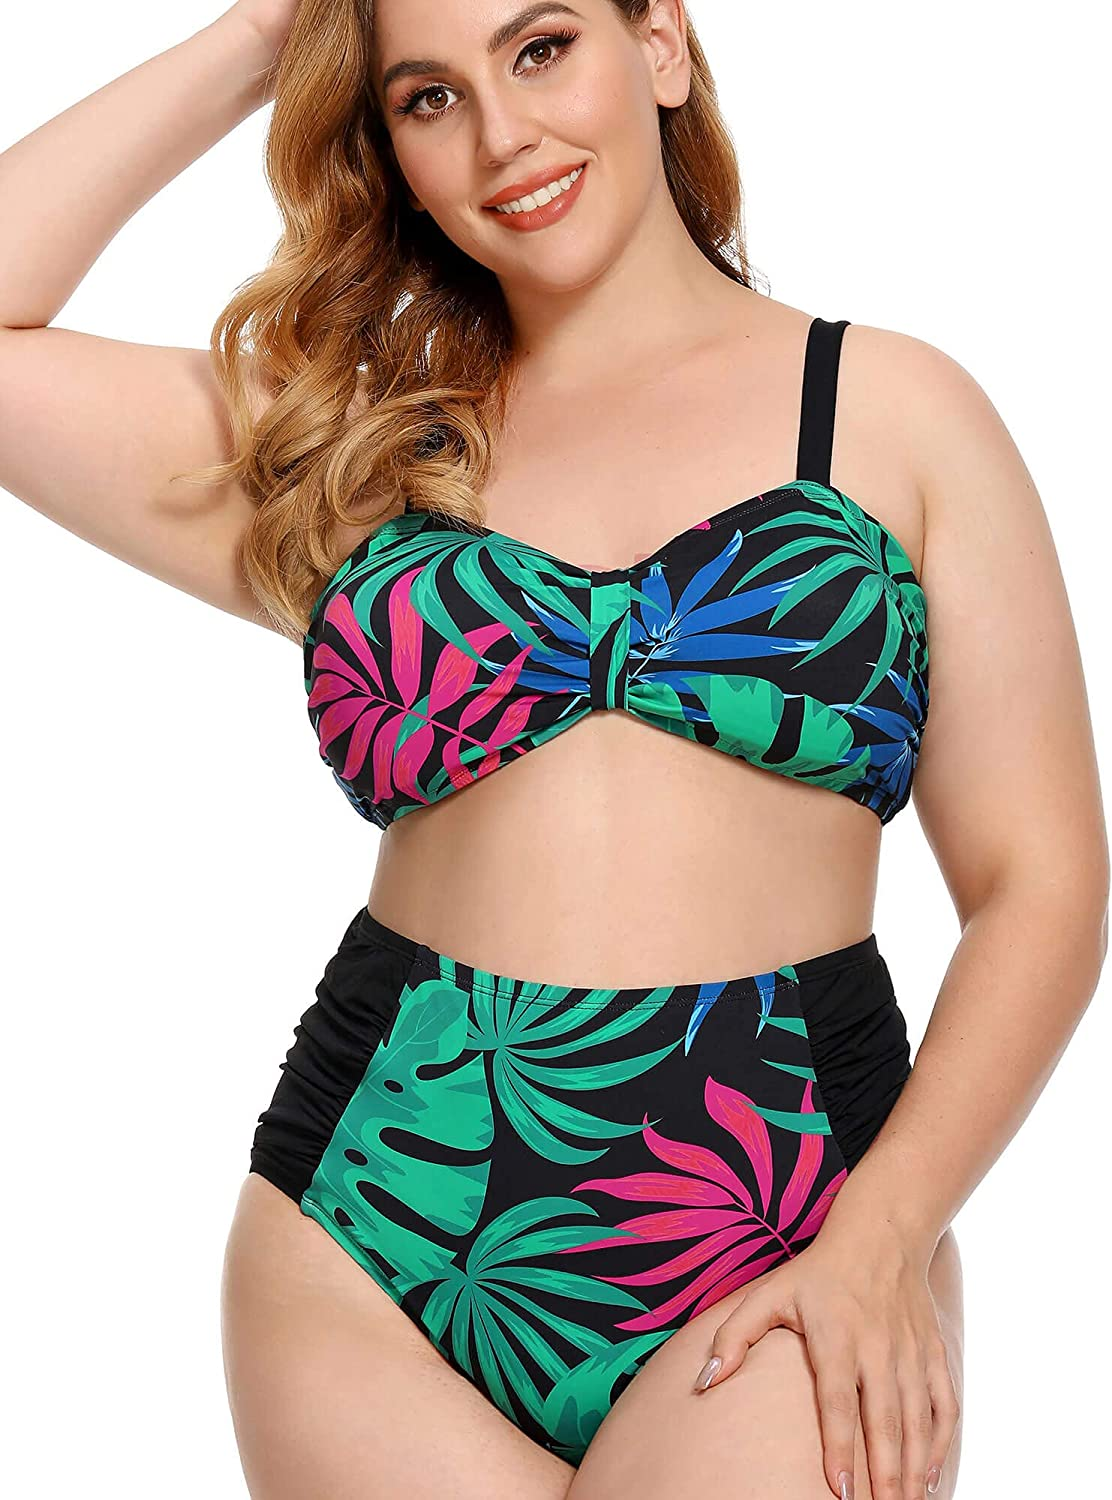 AS ROSE RICH Plus Size Swimsuit for Women - 2 Piece Plus Size Bikini and Tankini - Bathing Suits Women High Waisted